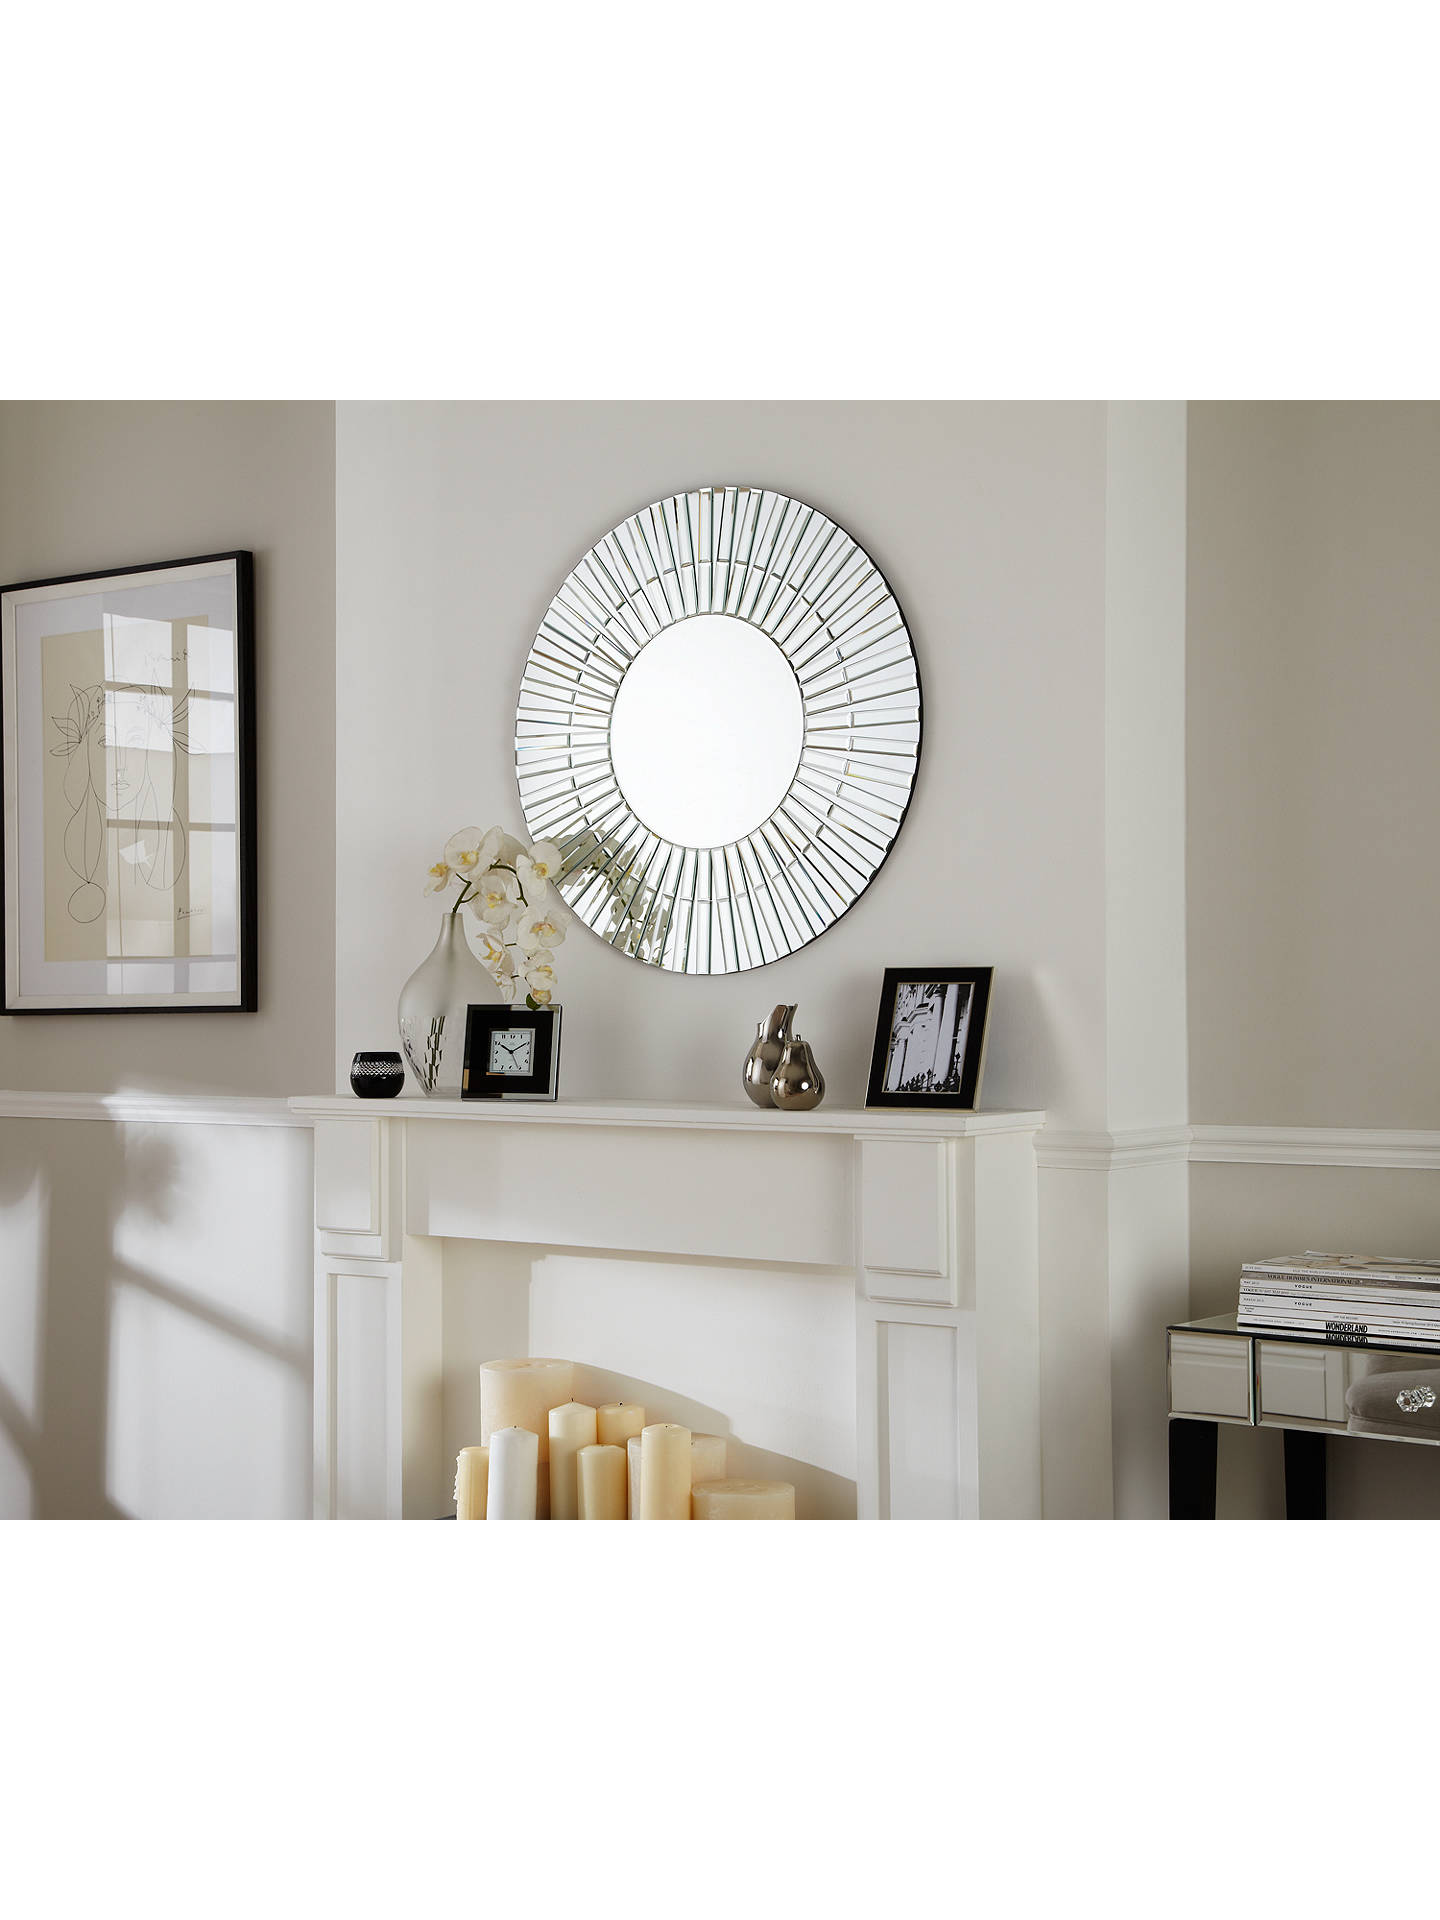 BuyJohn Lewis & Partners Morello Glass Mirror, Dia.80cm, Clear Online at johnlewis.com